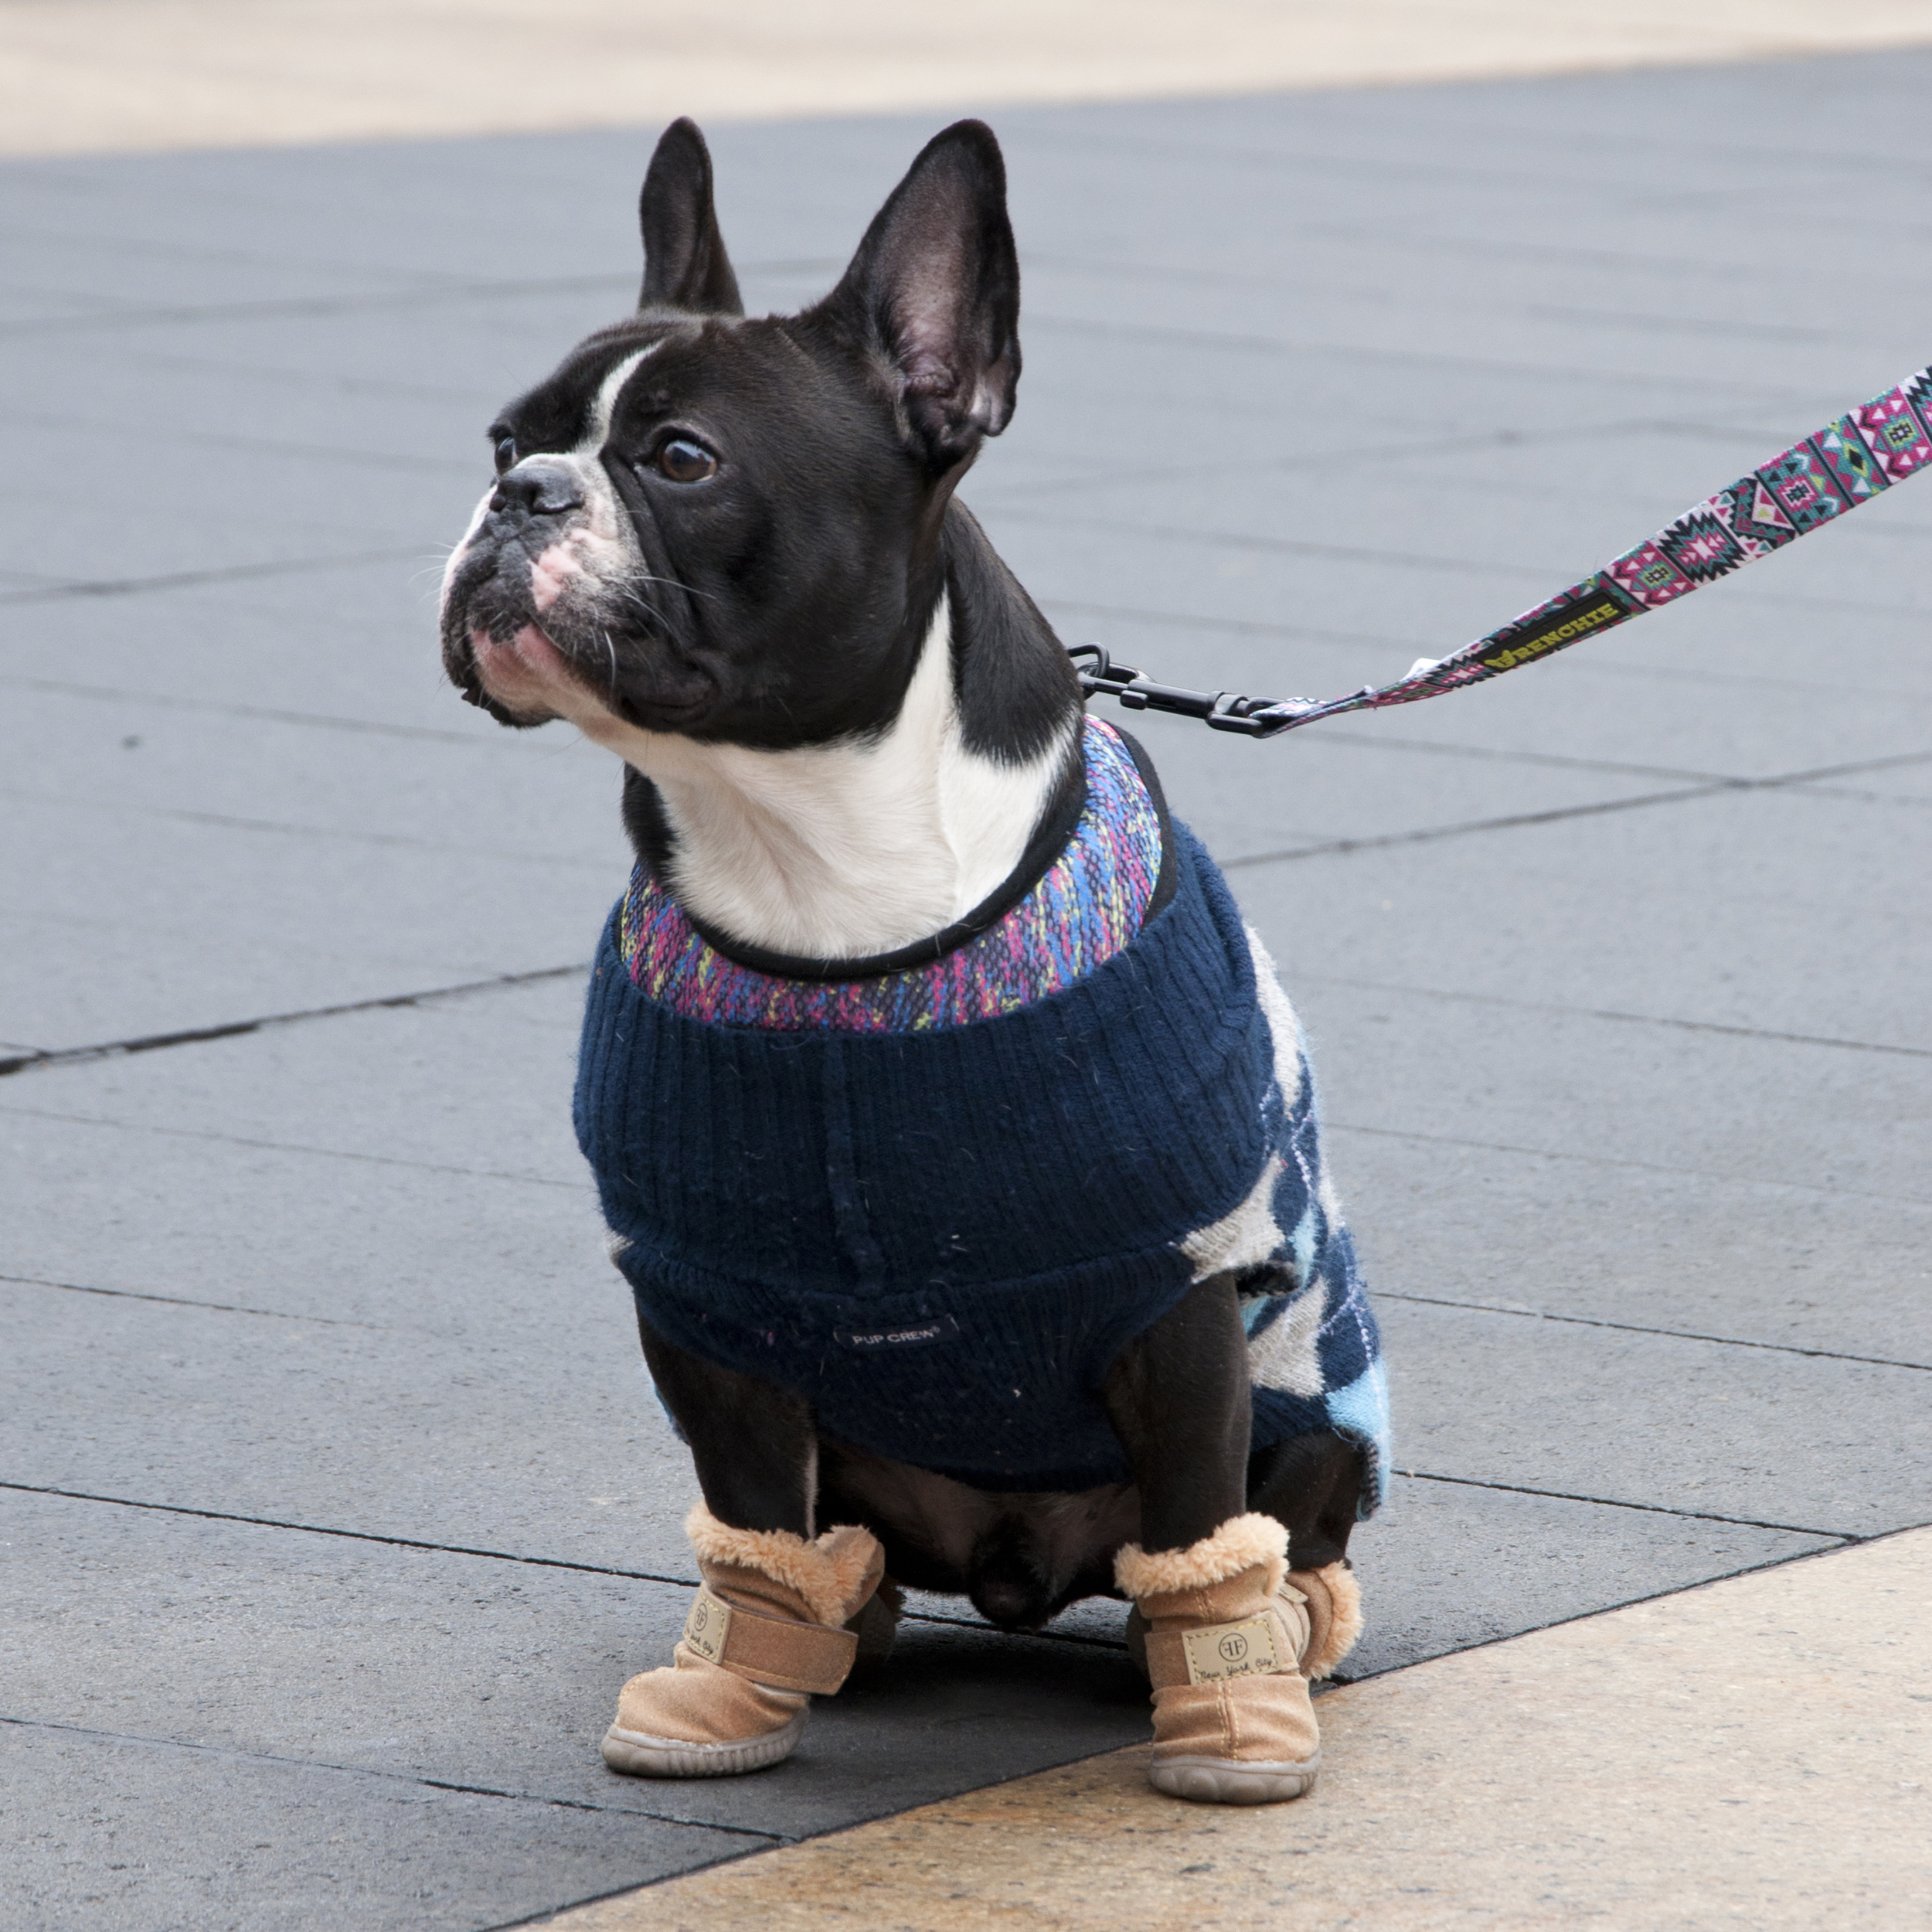 This little guy was sporting aPup Crew sweater and some fabulous boots (brand unknown)